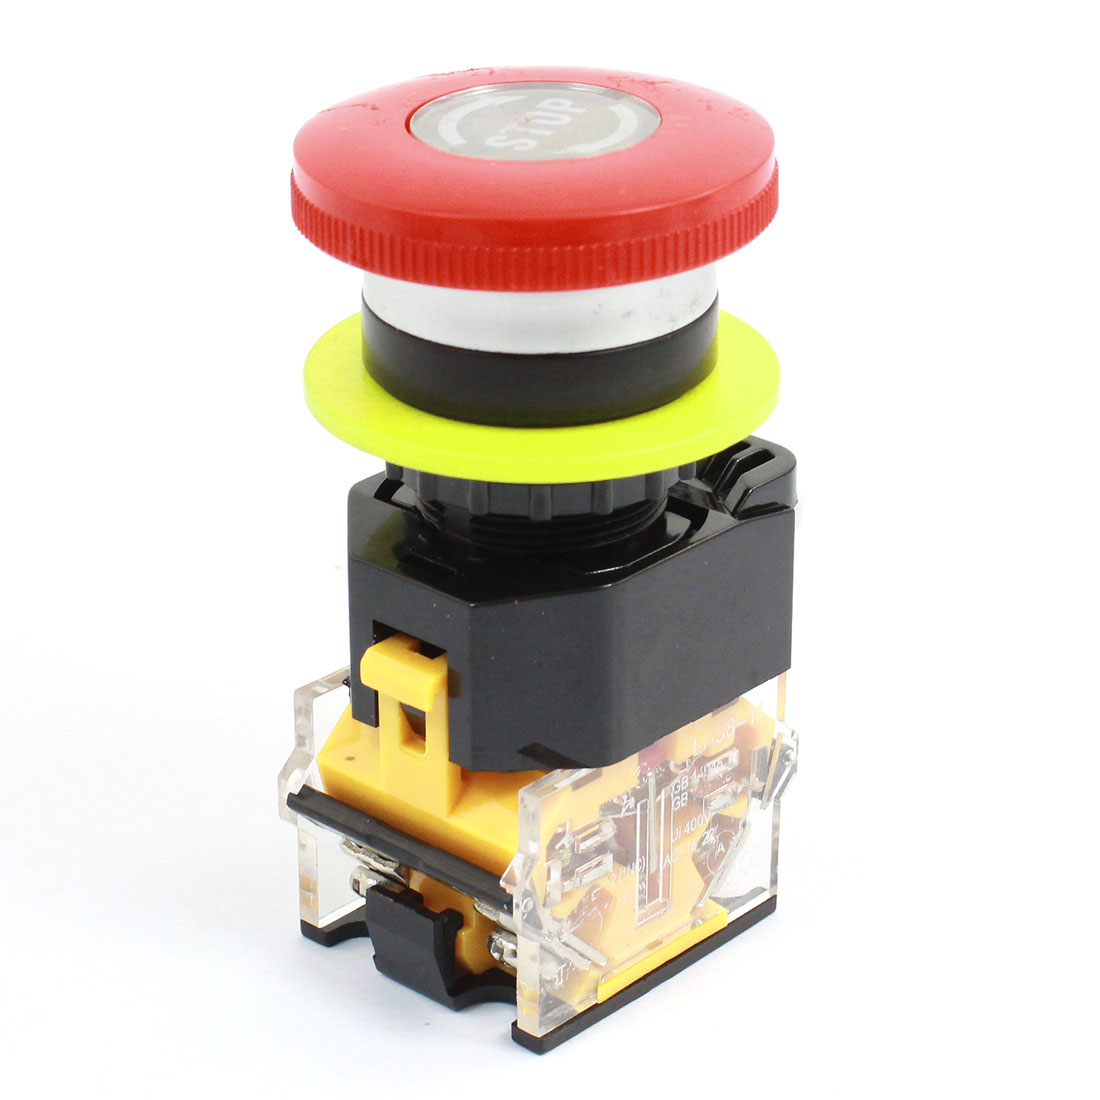 AC 400V 10A 1NO 1NC DPST 22mm Panel Cutout Dia Red Mushroomhead Momentary Emergency Selector Locking Pushbutton Switch